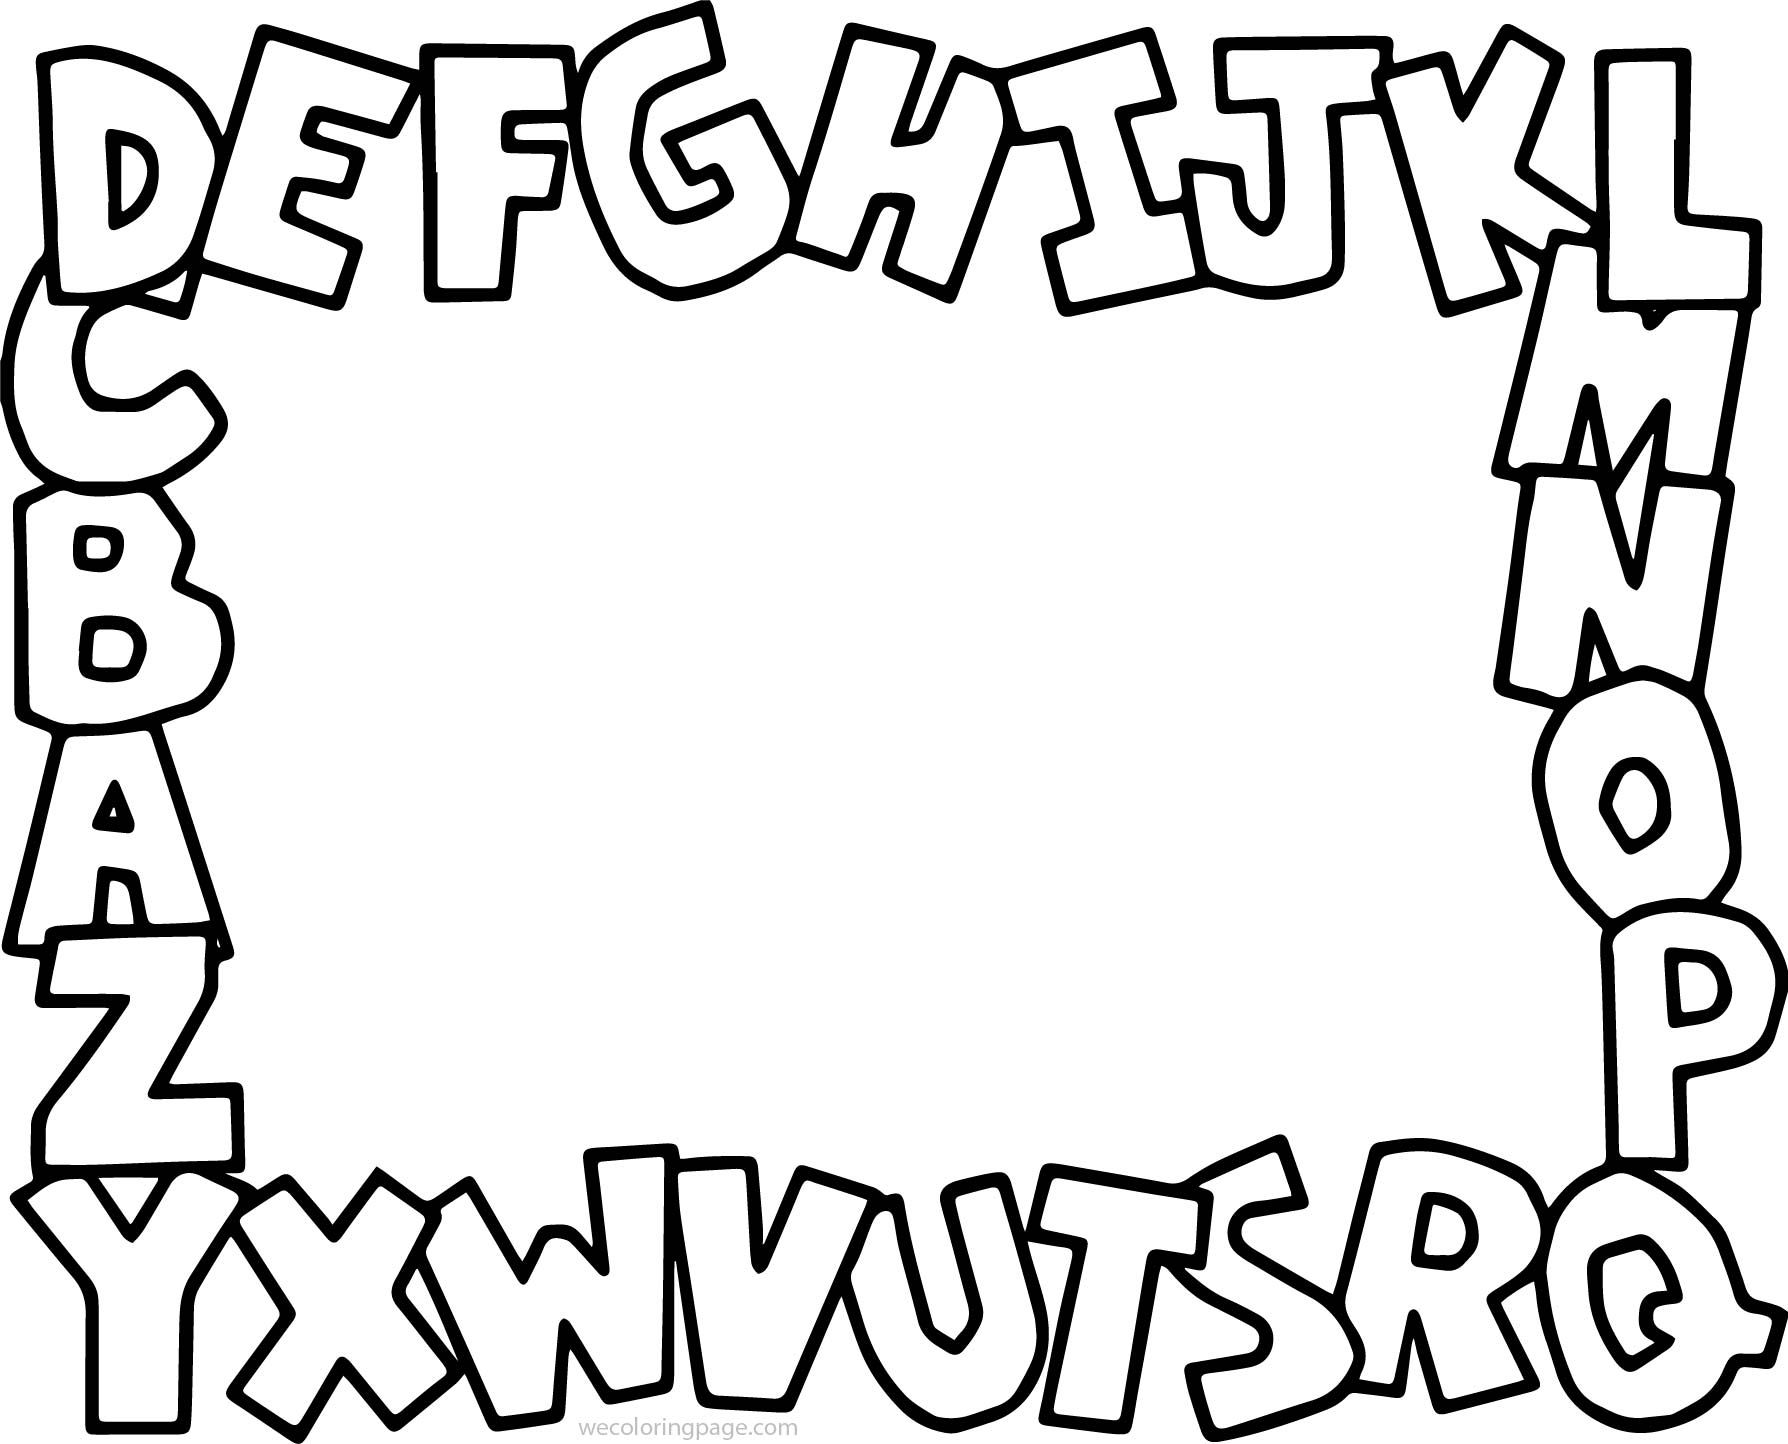 Cool Alphabet Abc Coloring Page Abc Coloring Pages Abc Coloring New Year Coloring Pages